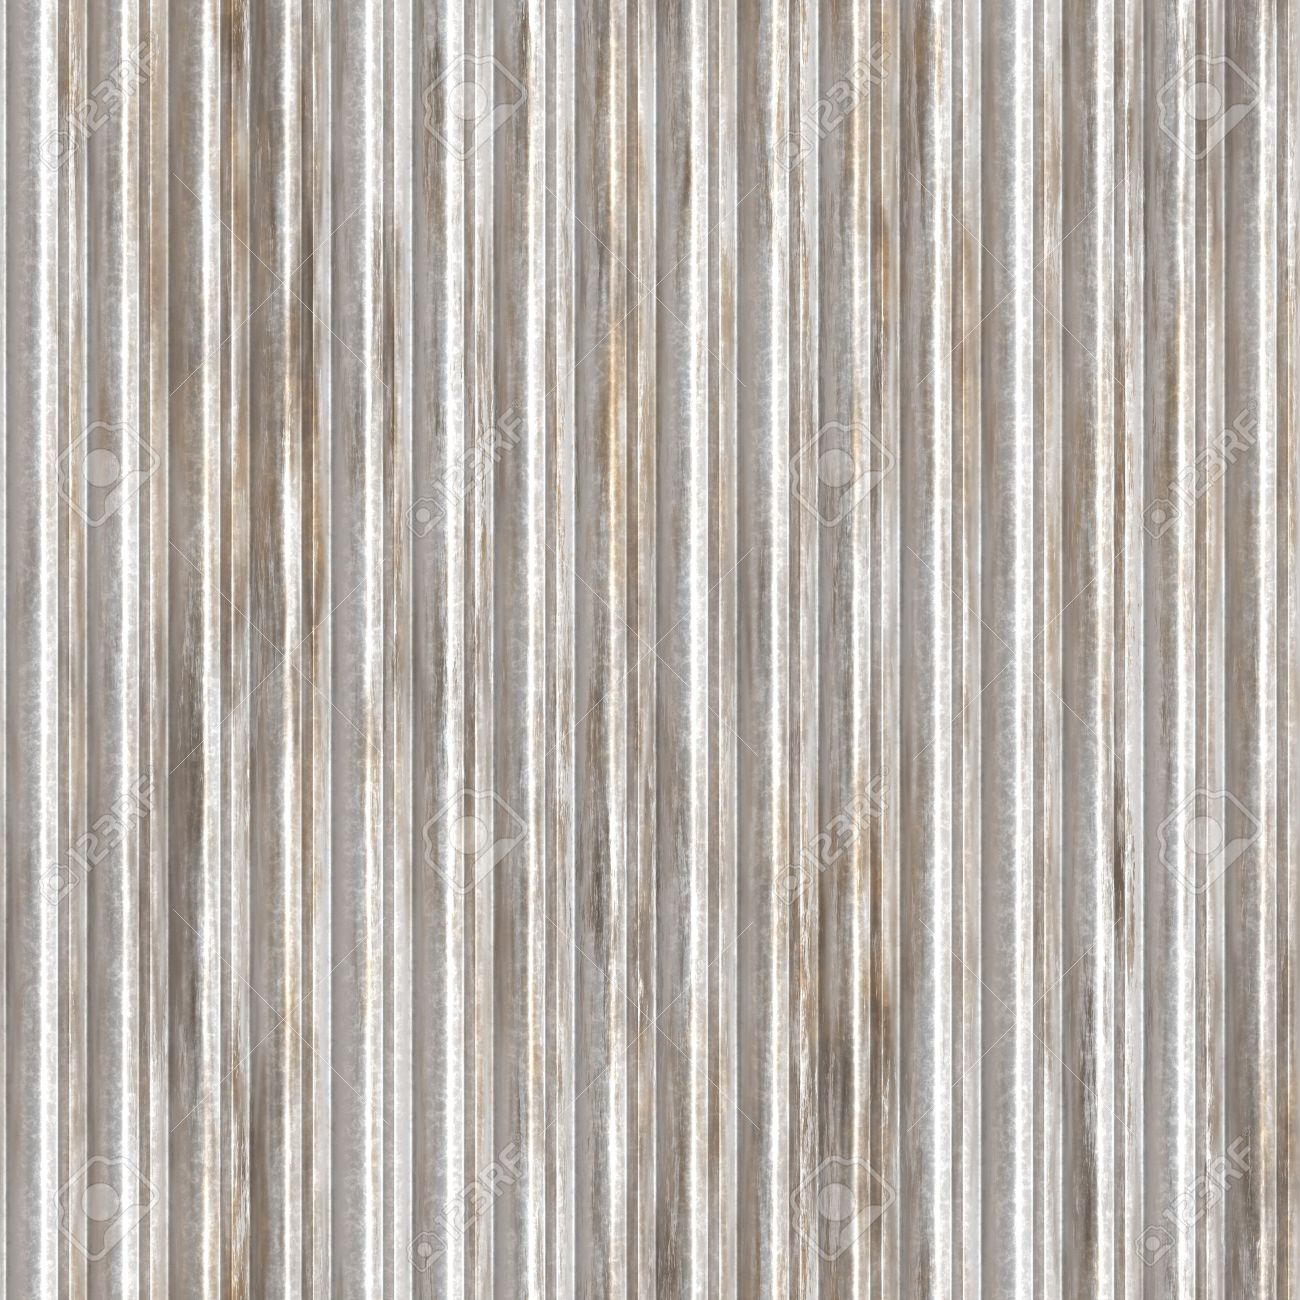 Corrugated metal ridged surface with corrosion seamless texture Stock Photo  5753322  Corrugated Metal Ridged Surface. Corrugated Metal Seamless Texture